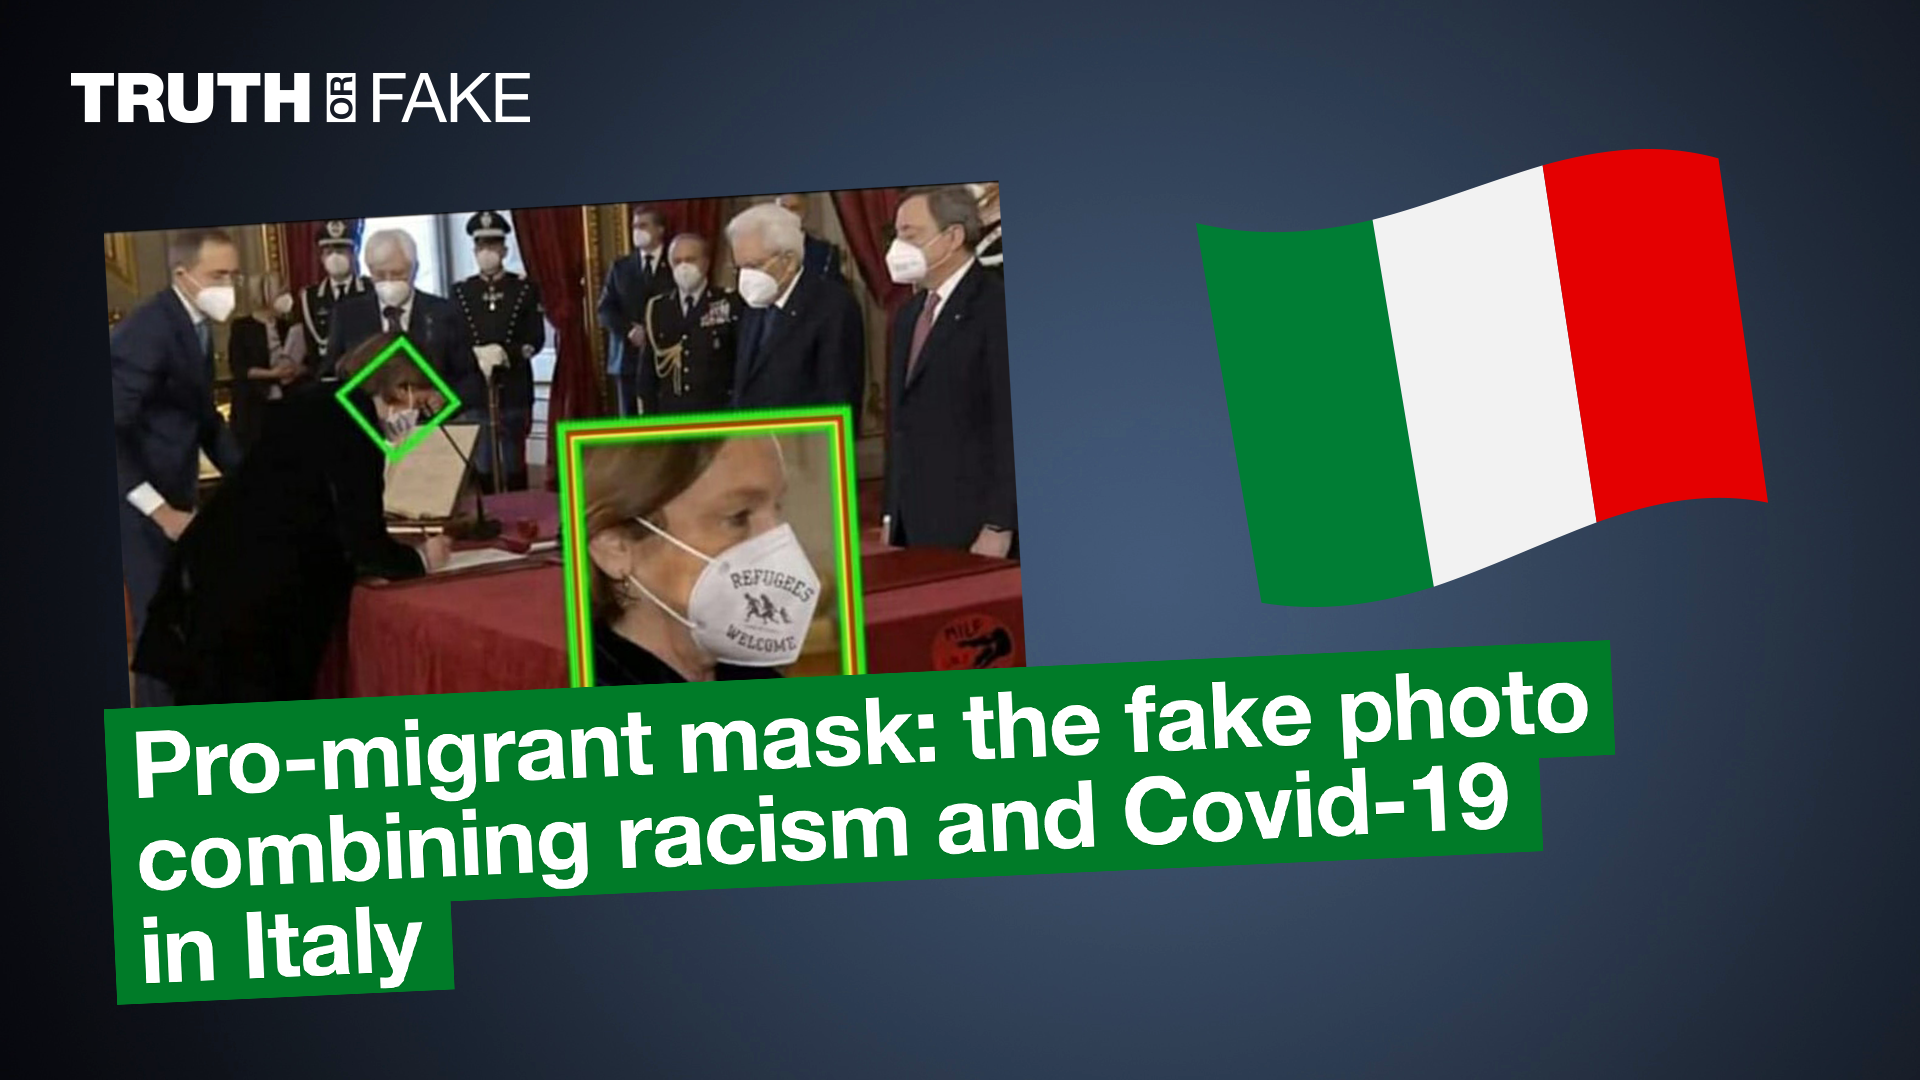 Pro-migrant mask: the fake photo combining racism and Covid-19 in Italy